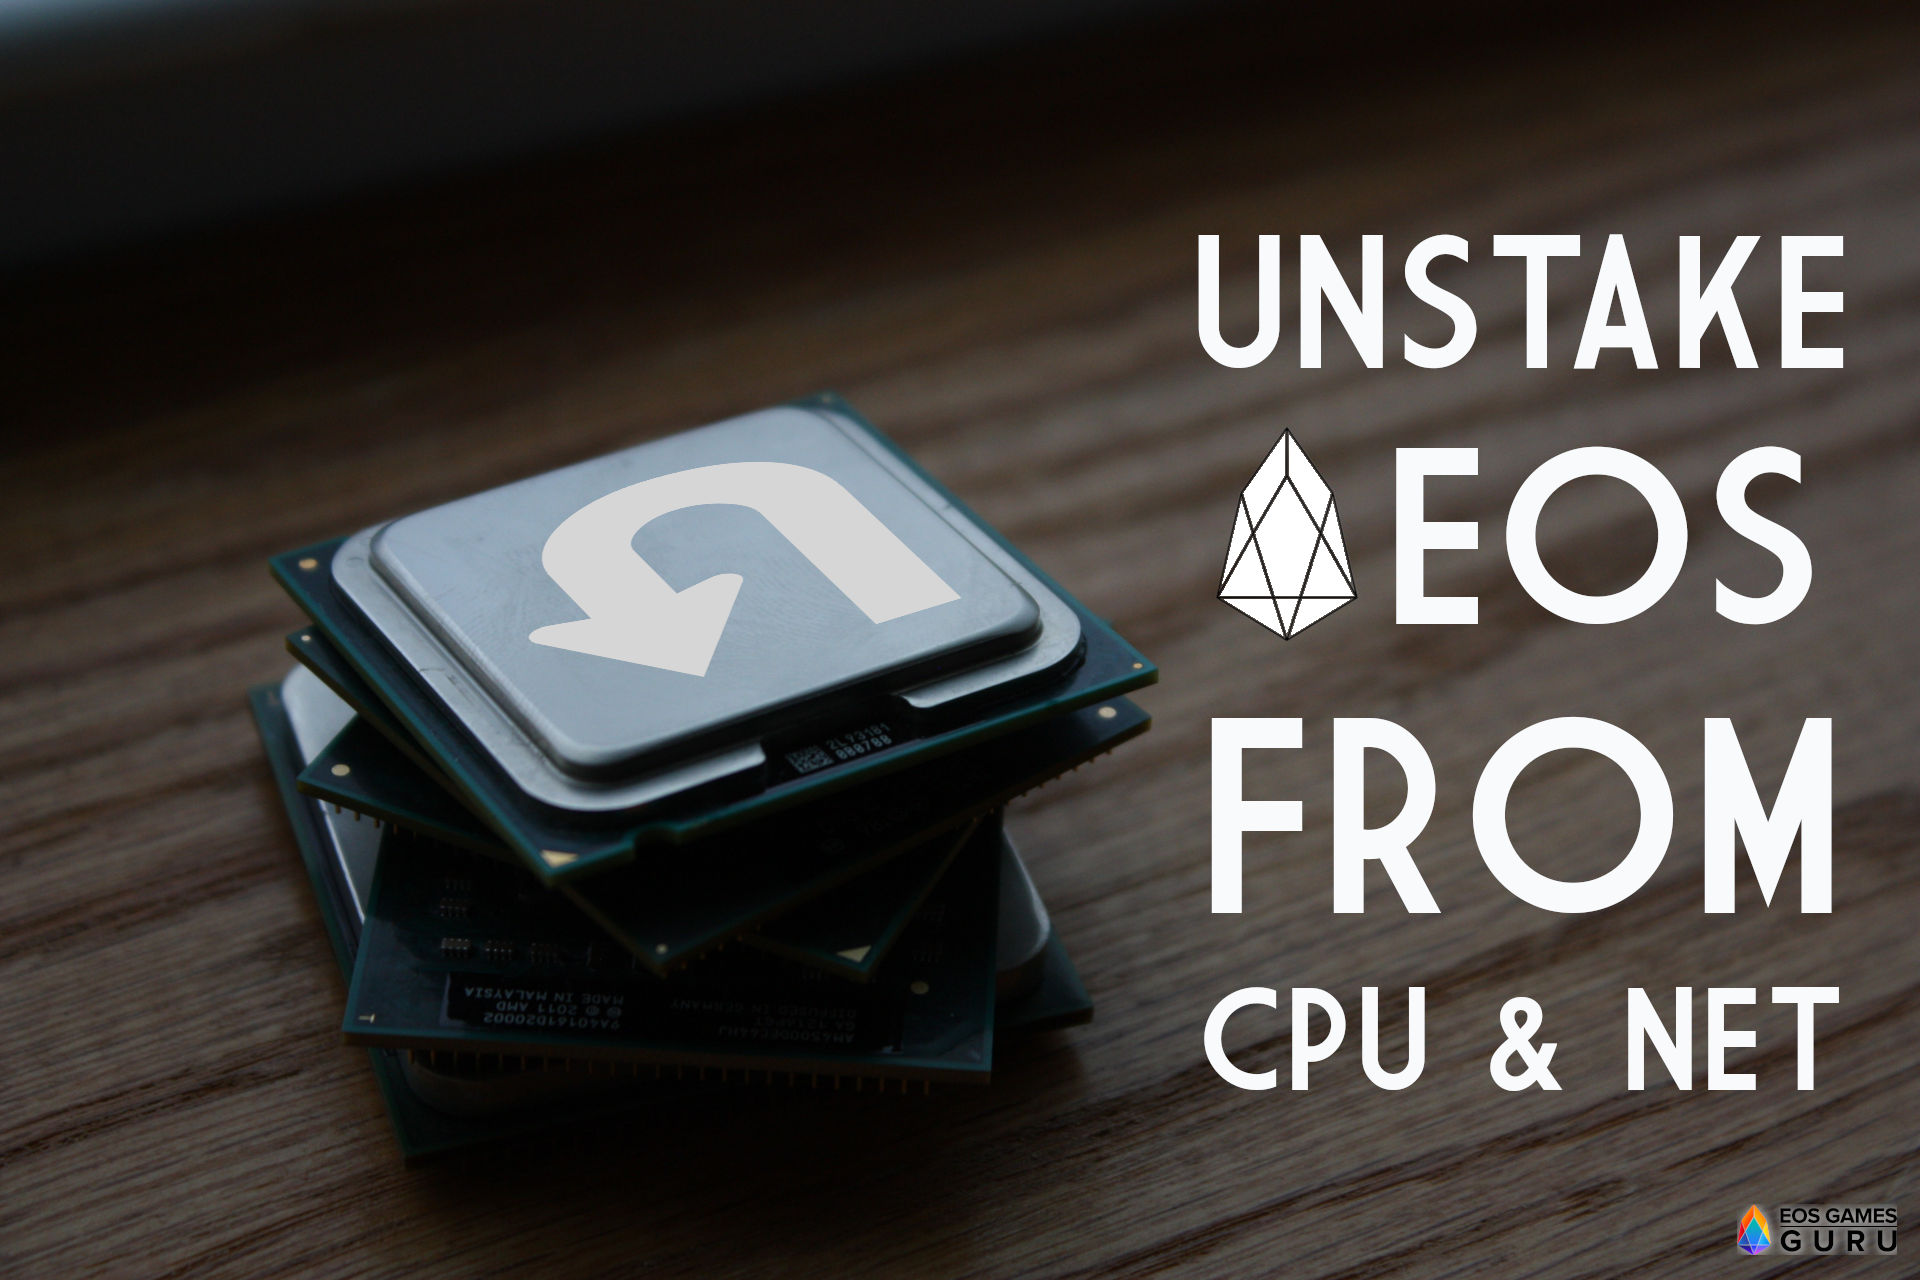 How To Unstake CPU/NET on EOS